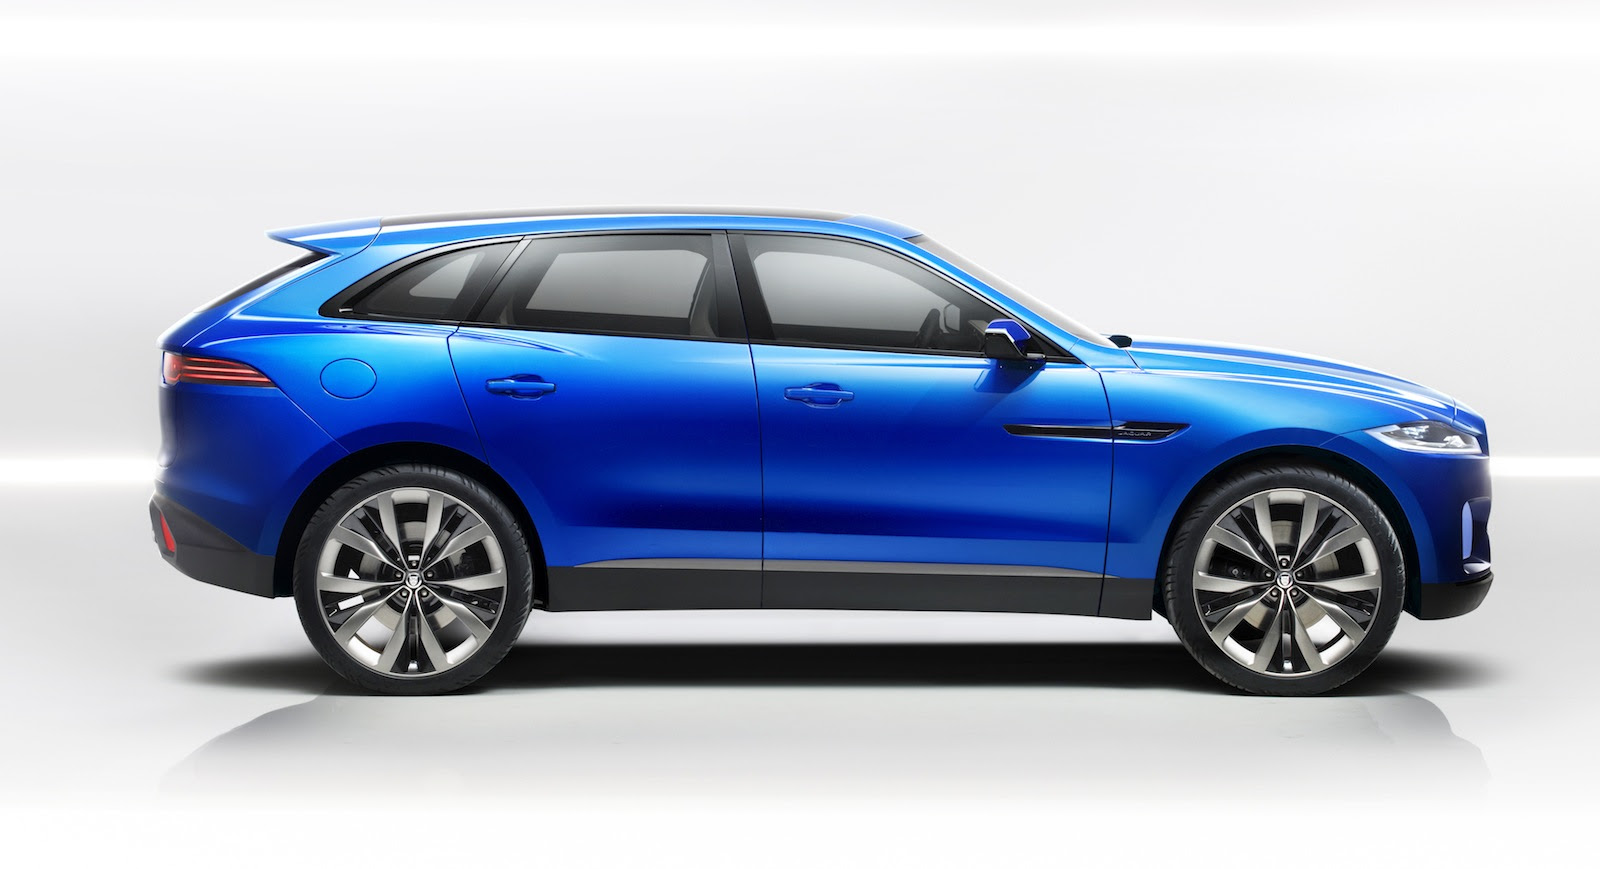 Jaguar Suv C X17 Concept Revealed Photos 1 Of 31 | 2017 - 2018 Cars ...